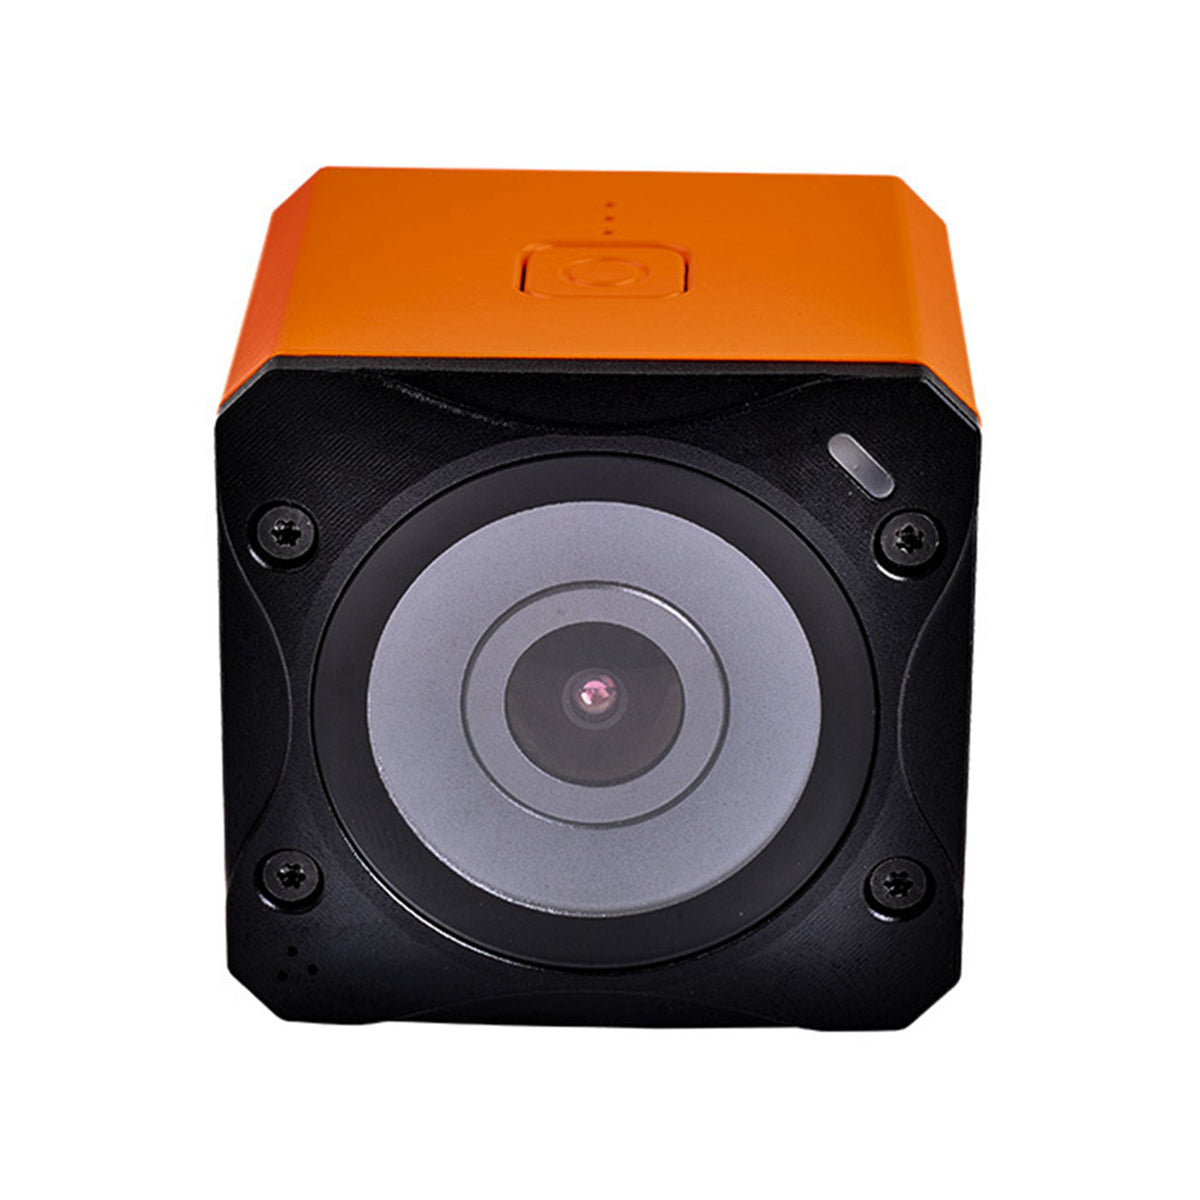 Runcam 3S WIFI 1080p 60fps WDR 160 Degree FPV Action Camera+35 Degree Inclined Base Camera Protective Frame Case Orange for RC Racing Drone